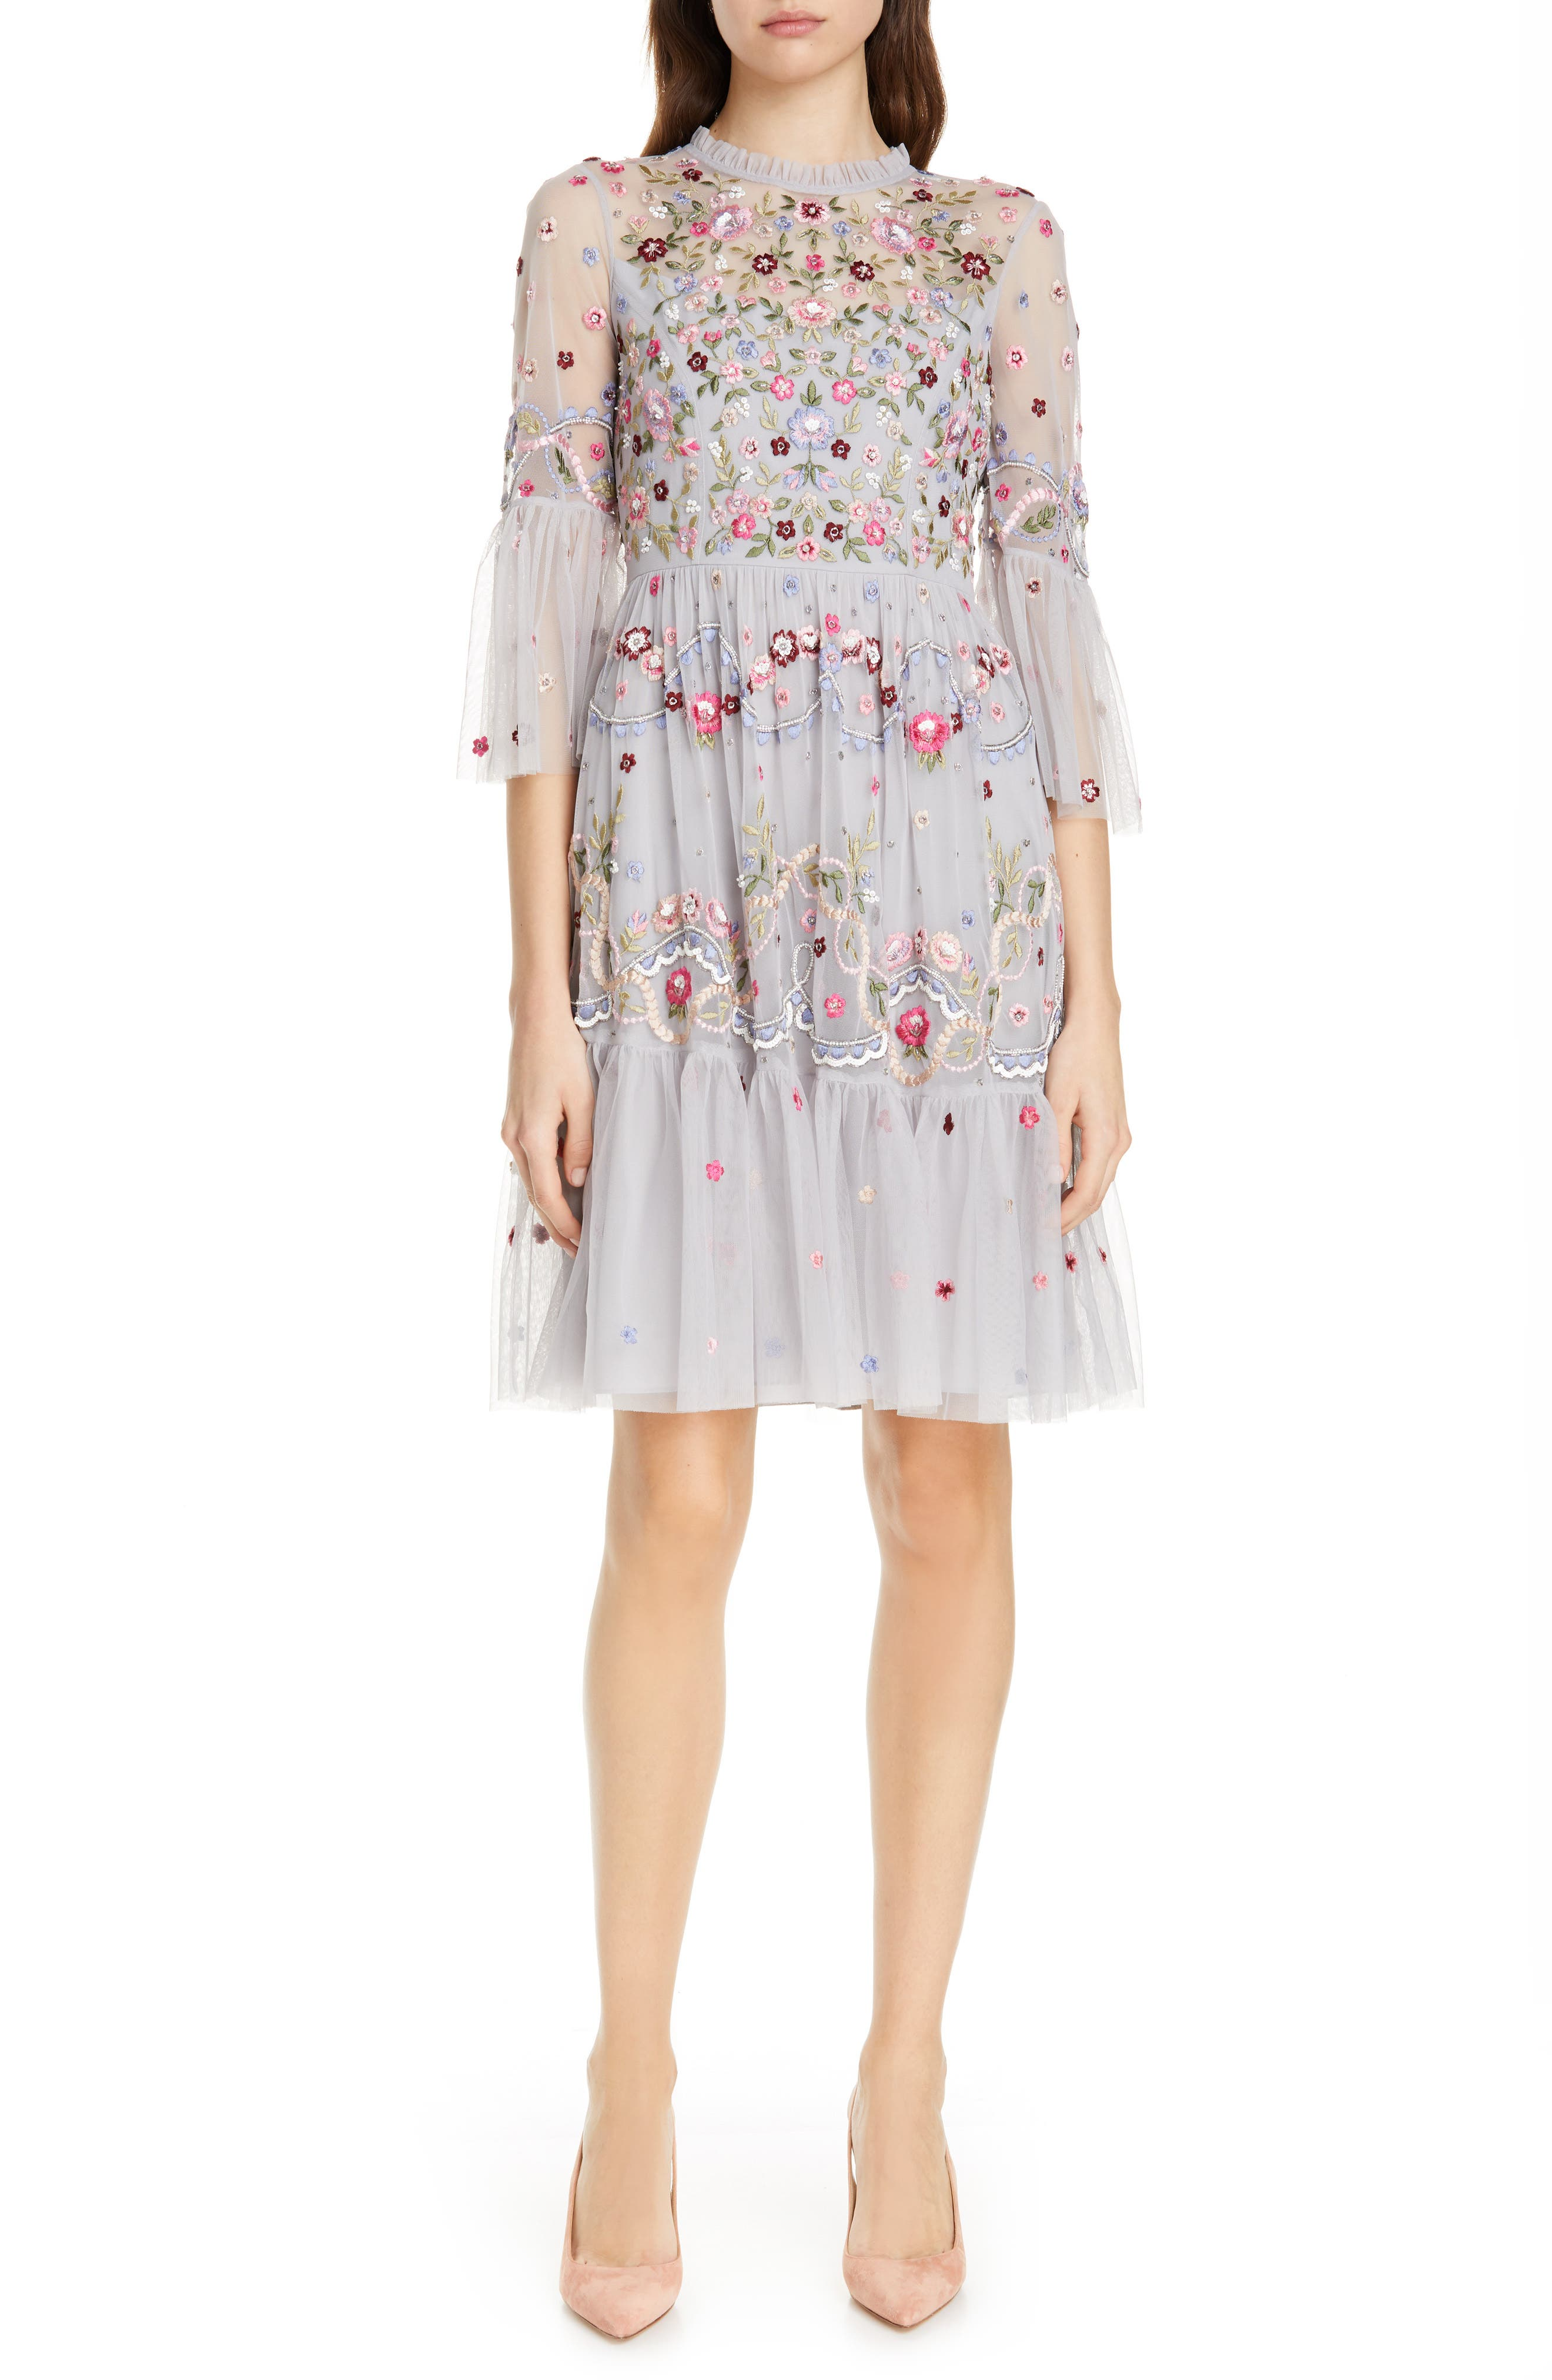 NEEDLE & THREAD, Dreamers Embroidered Tulle Dress, Main thumbnail 1, color, 400